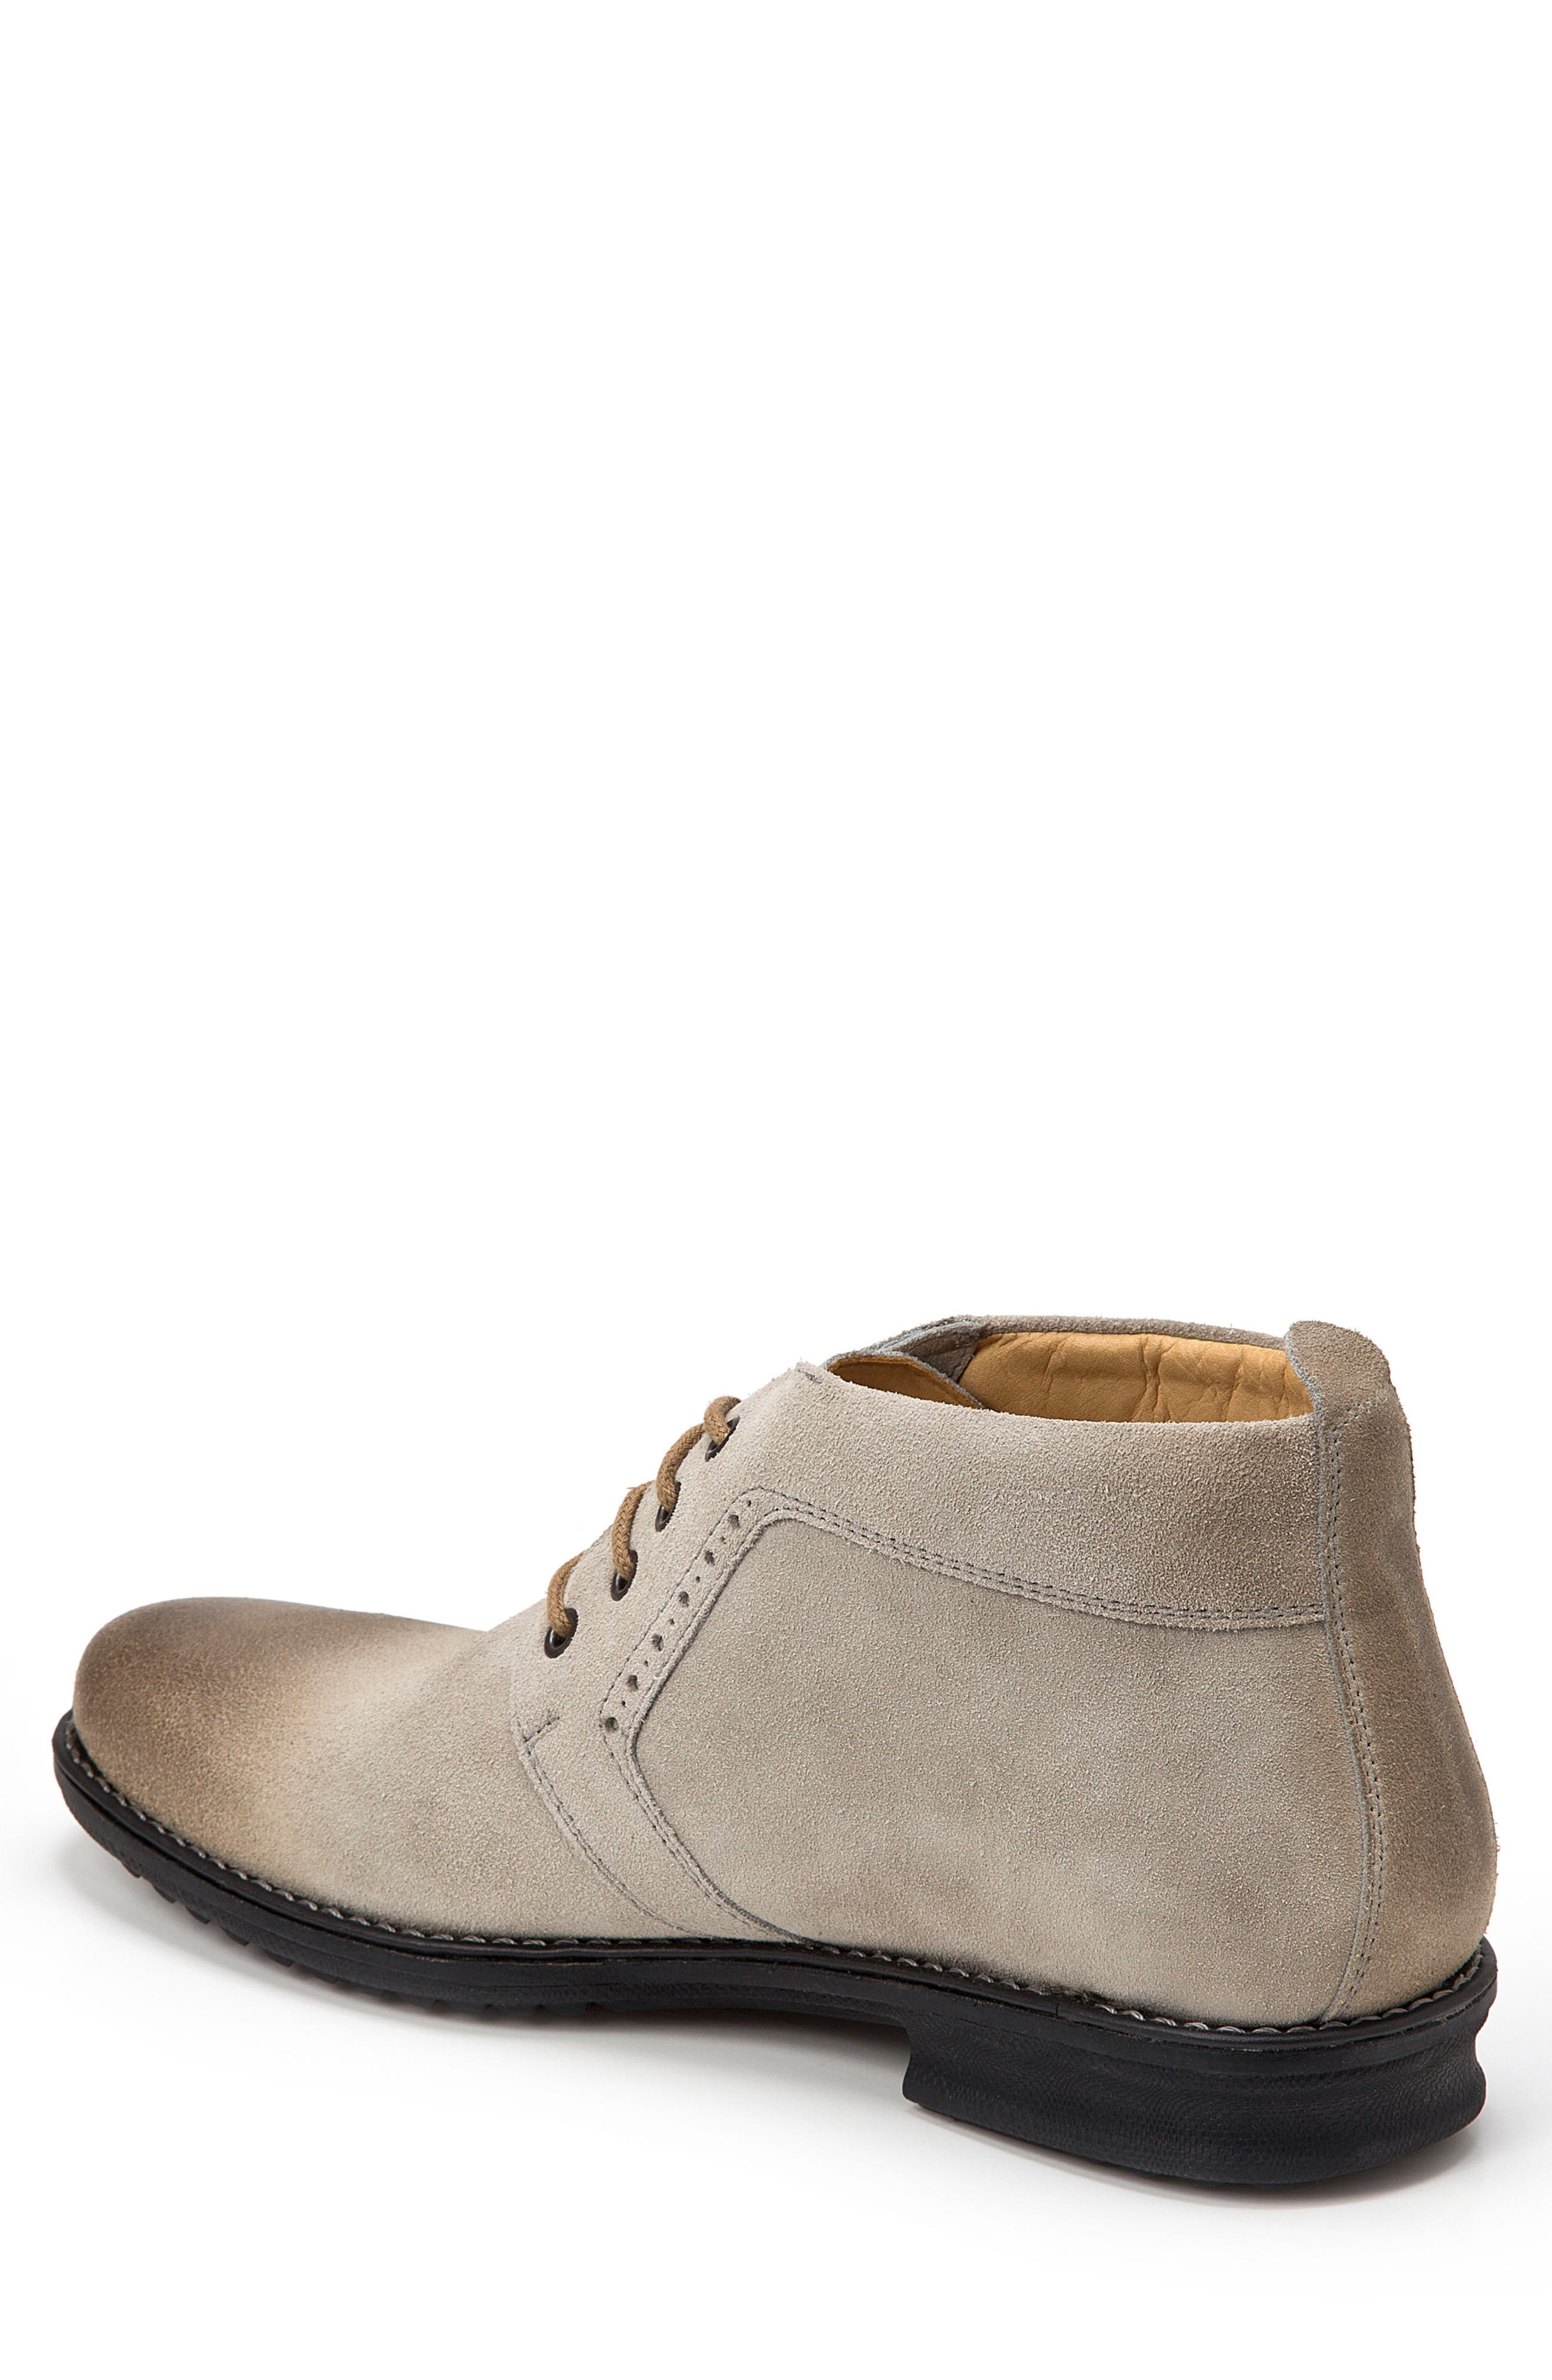 Chukka Boot,                             Alternate thumbnail 2, color,                             GREY